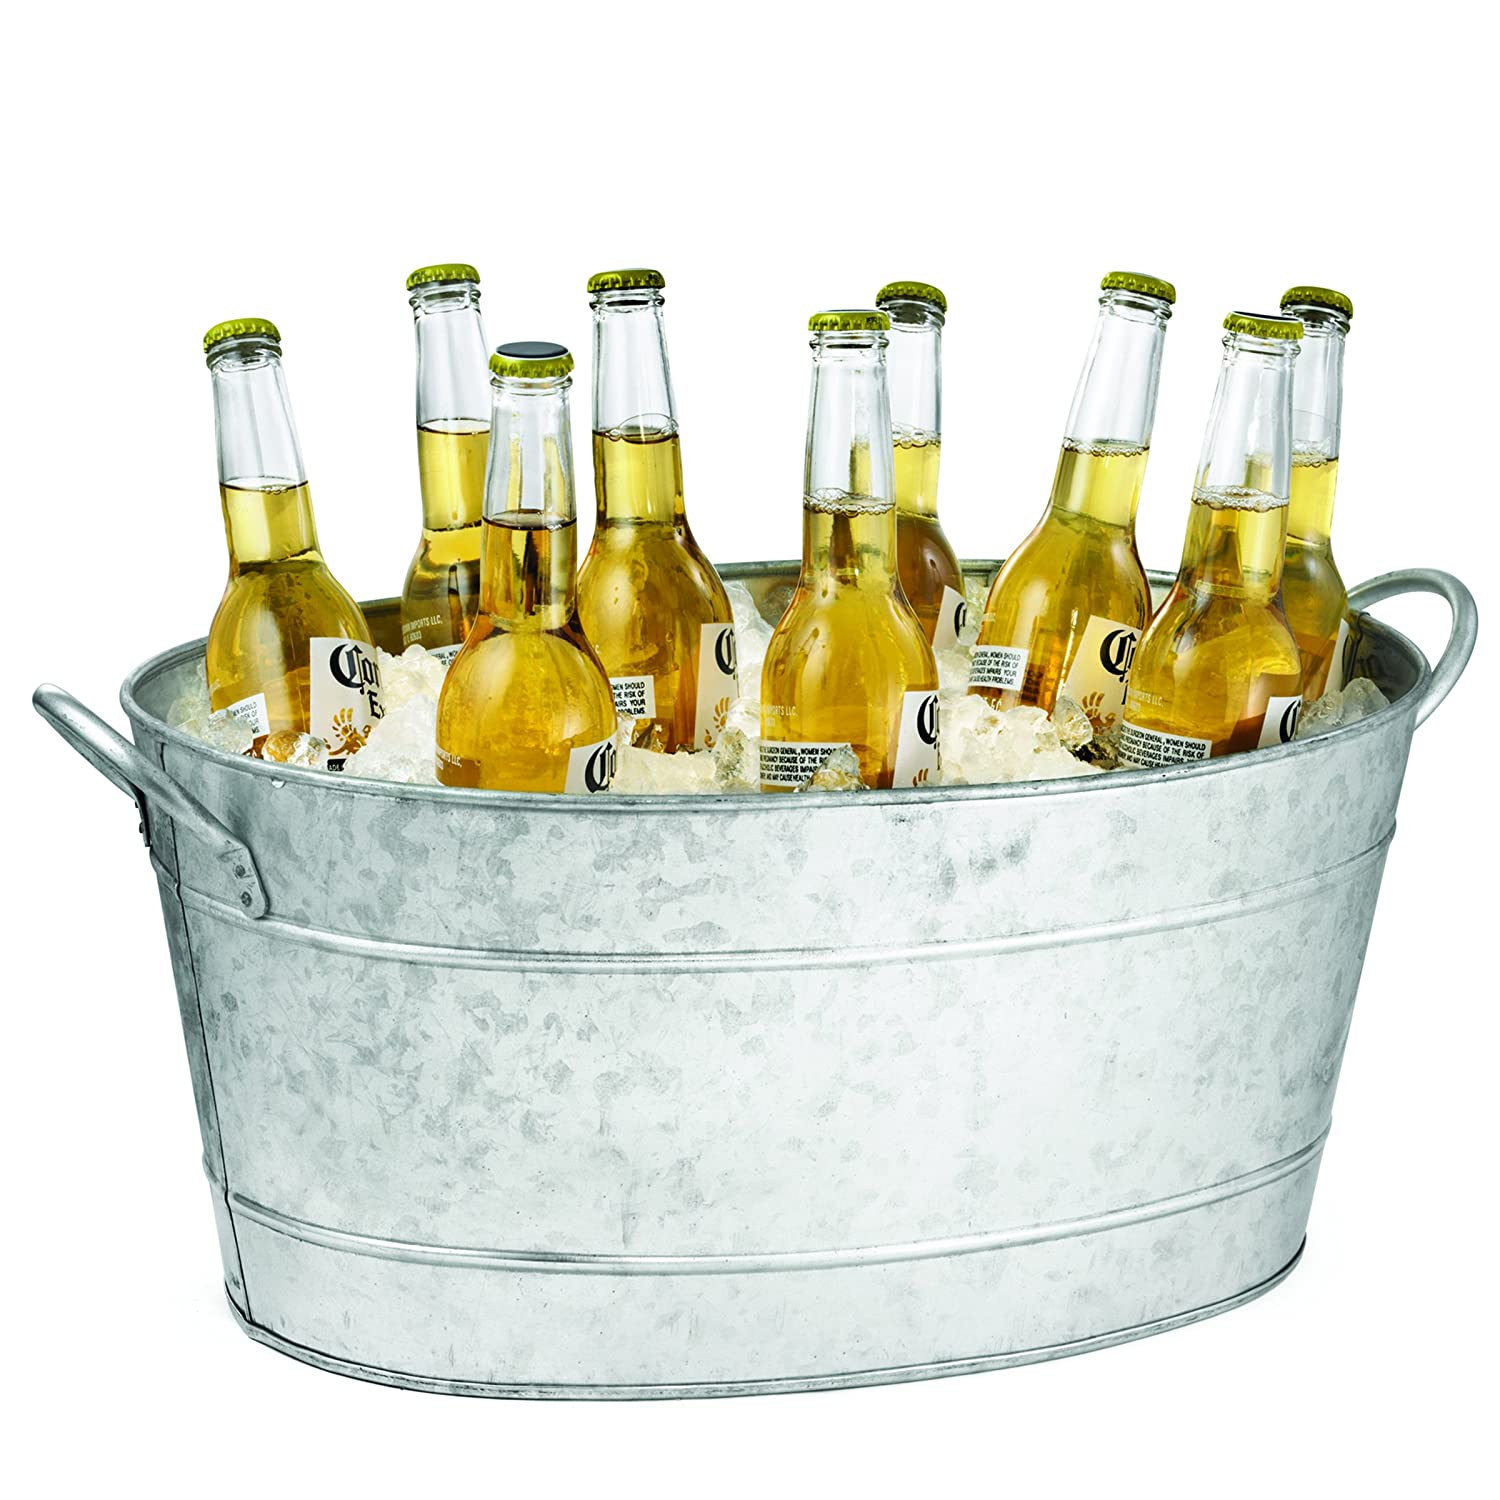 TableCraft Galvanized Beverage Tub, 5.5 Gallon (2-(Pack))